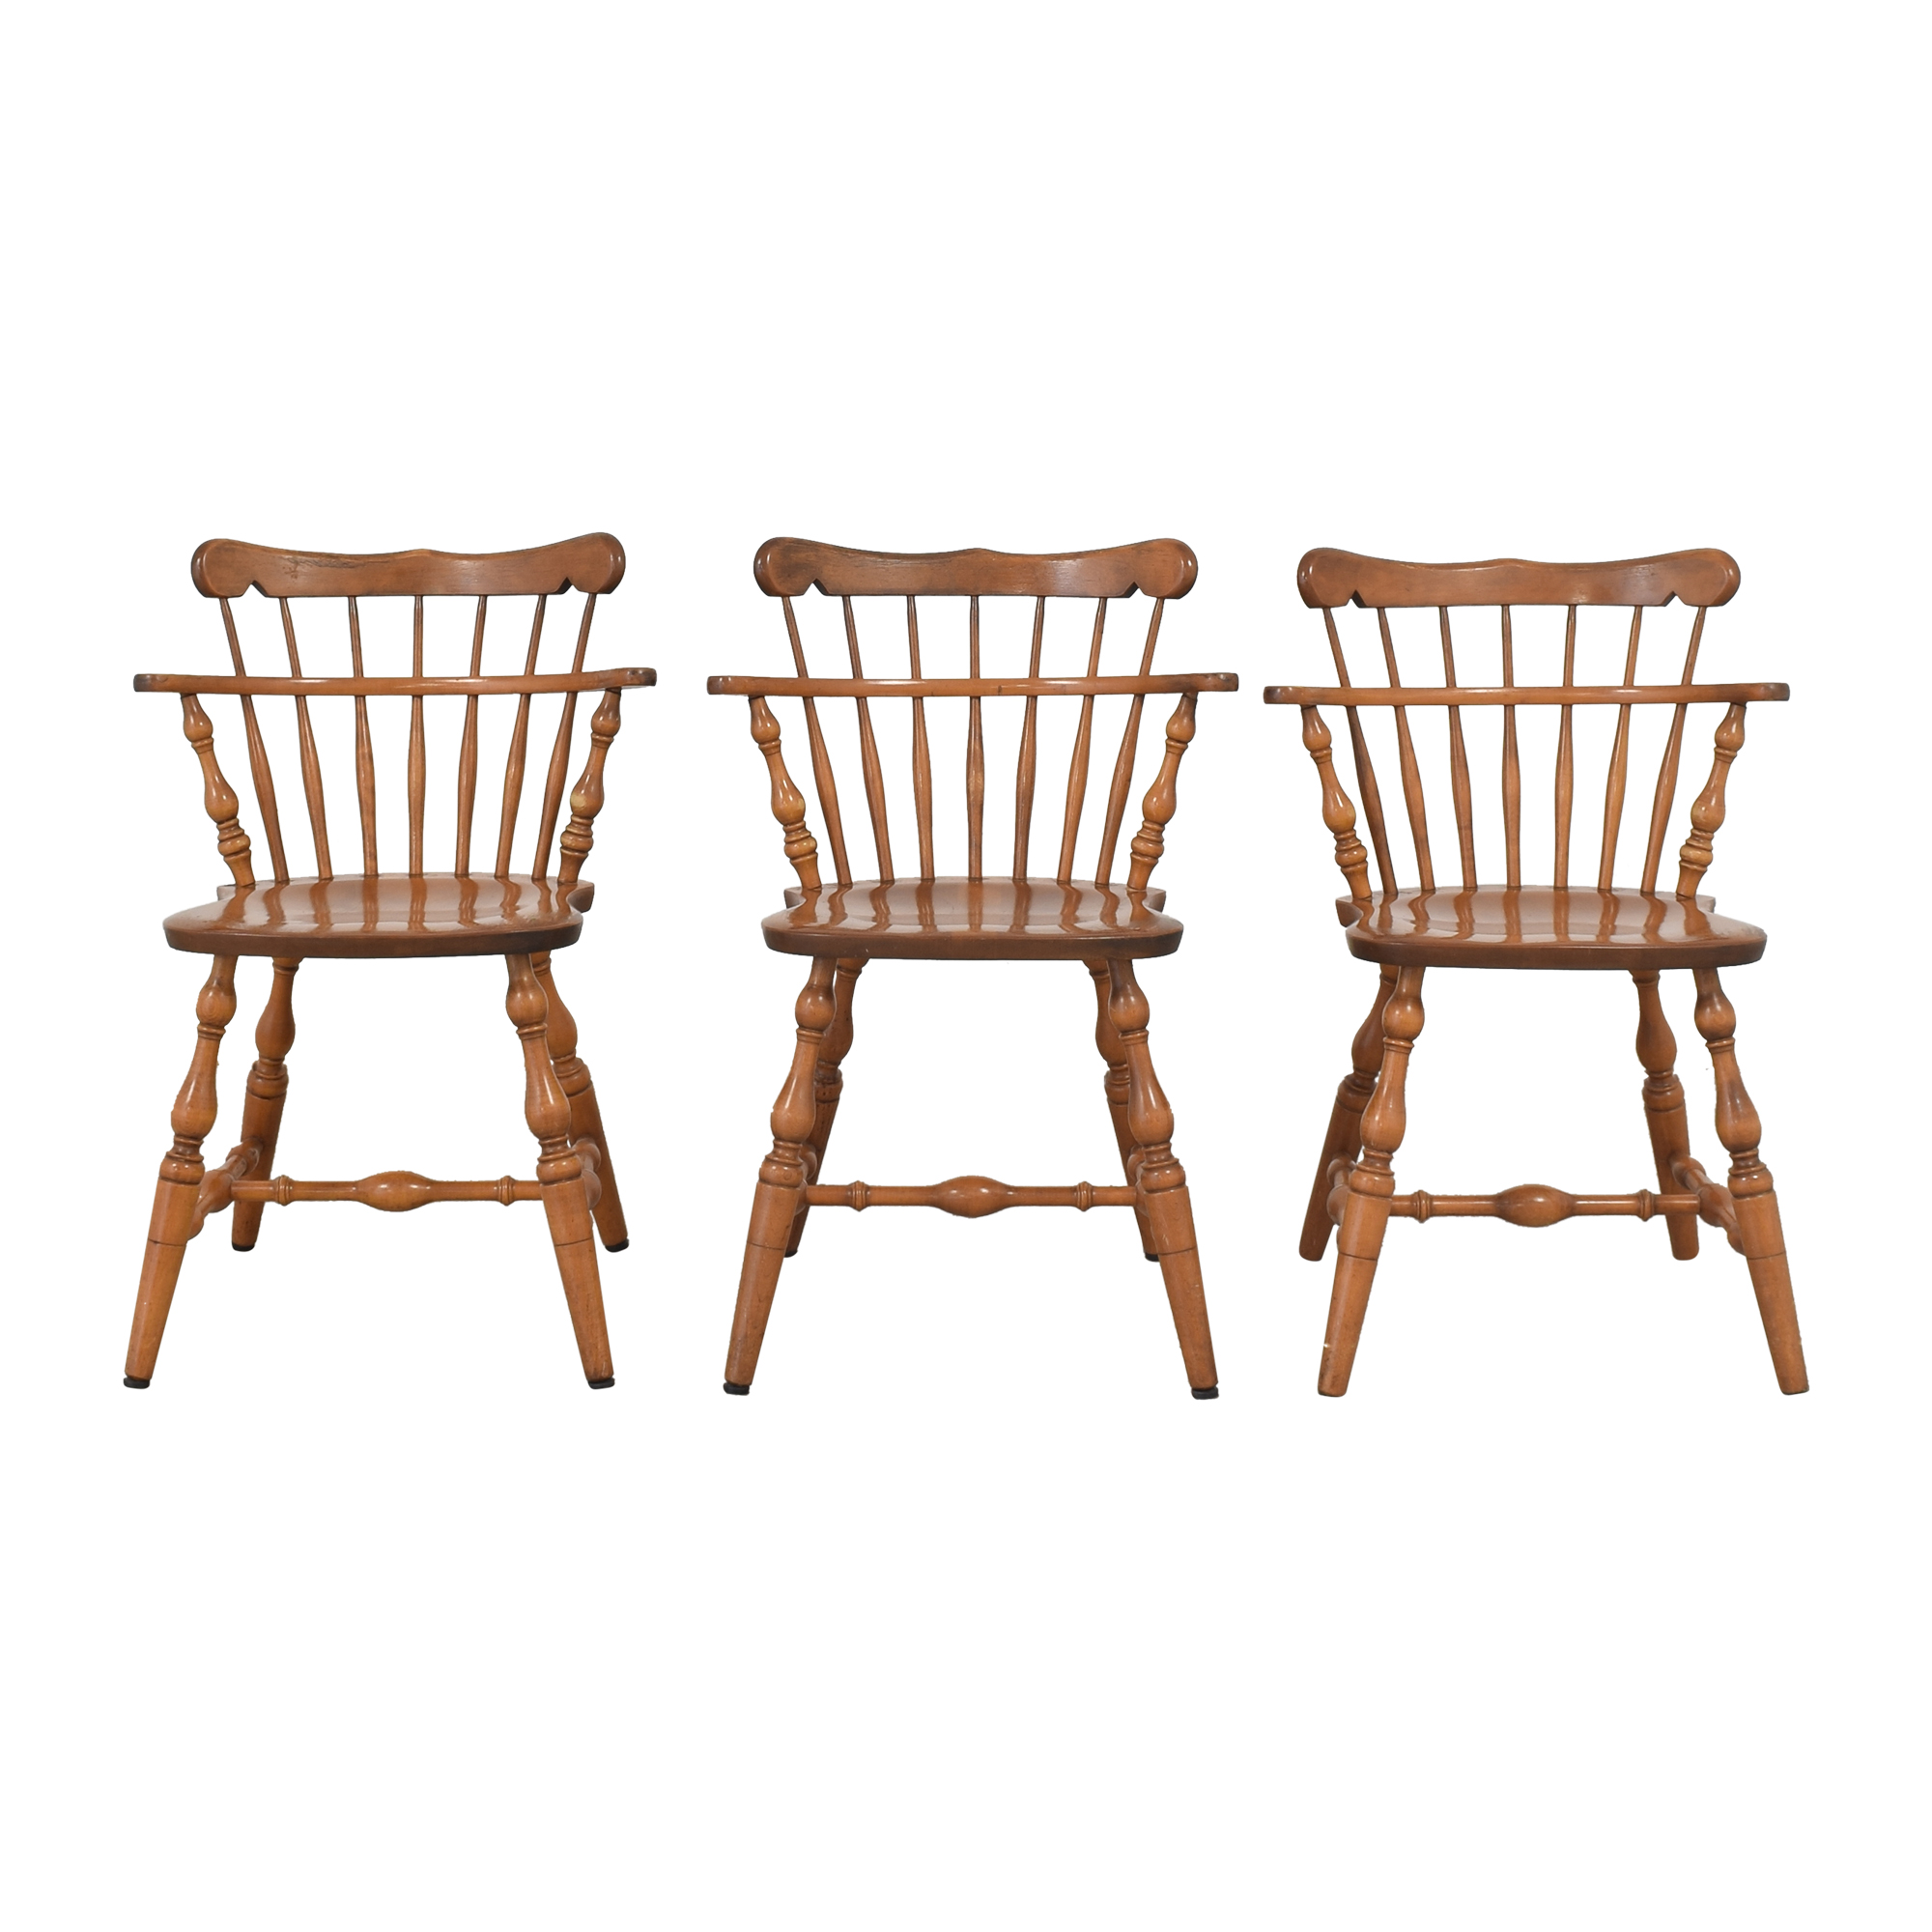 S. Bent & Bros S. Bent & Bros Colonial Windsor Dining Chairs on sale